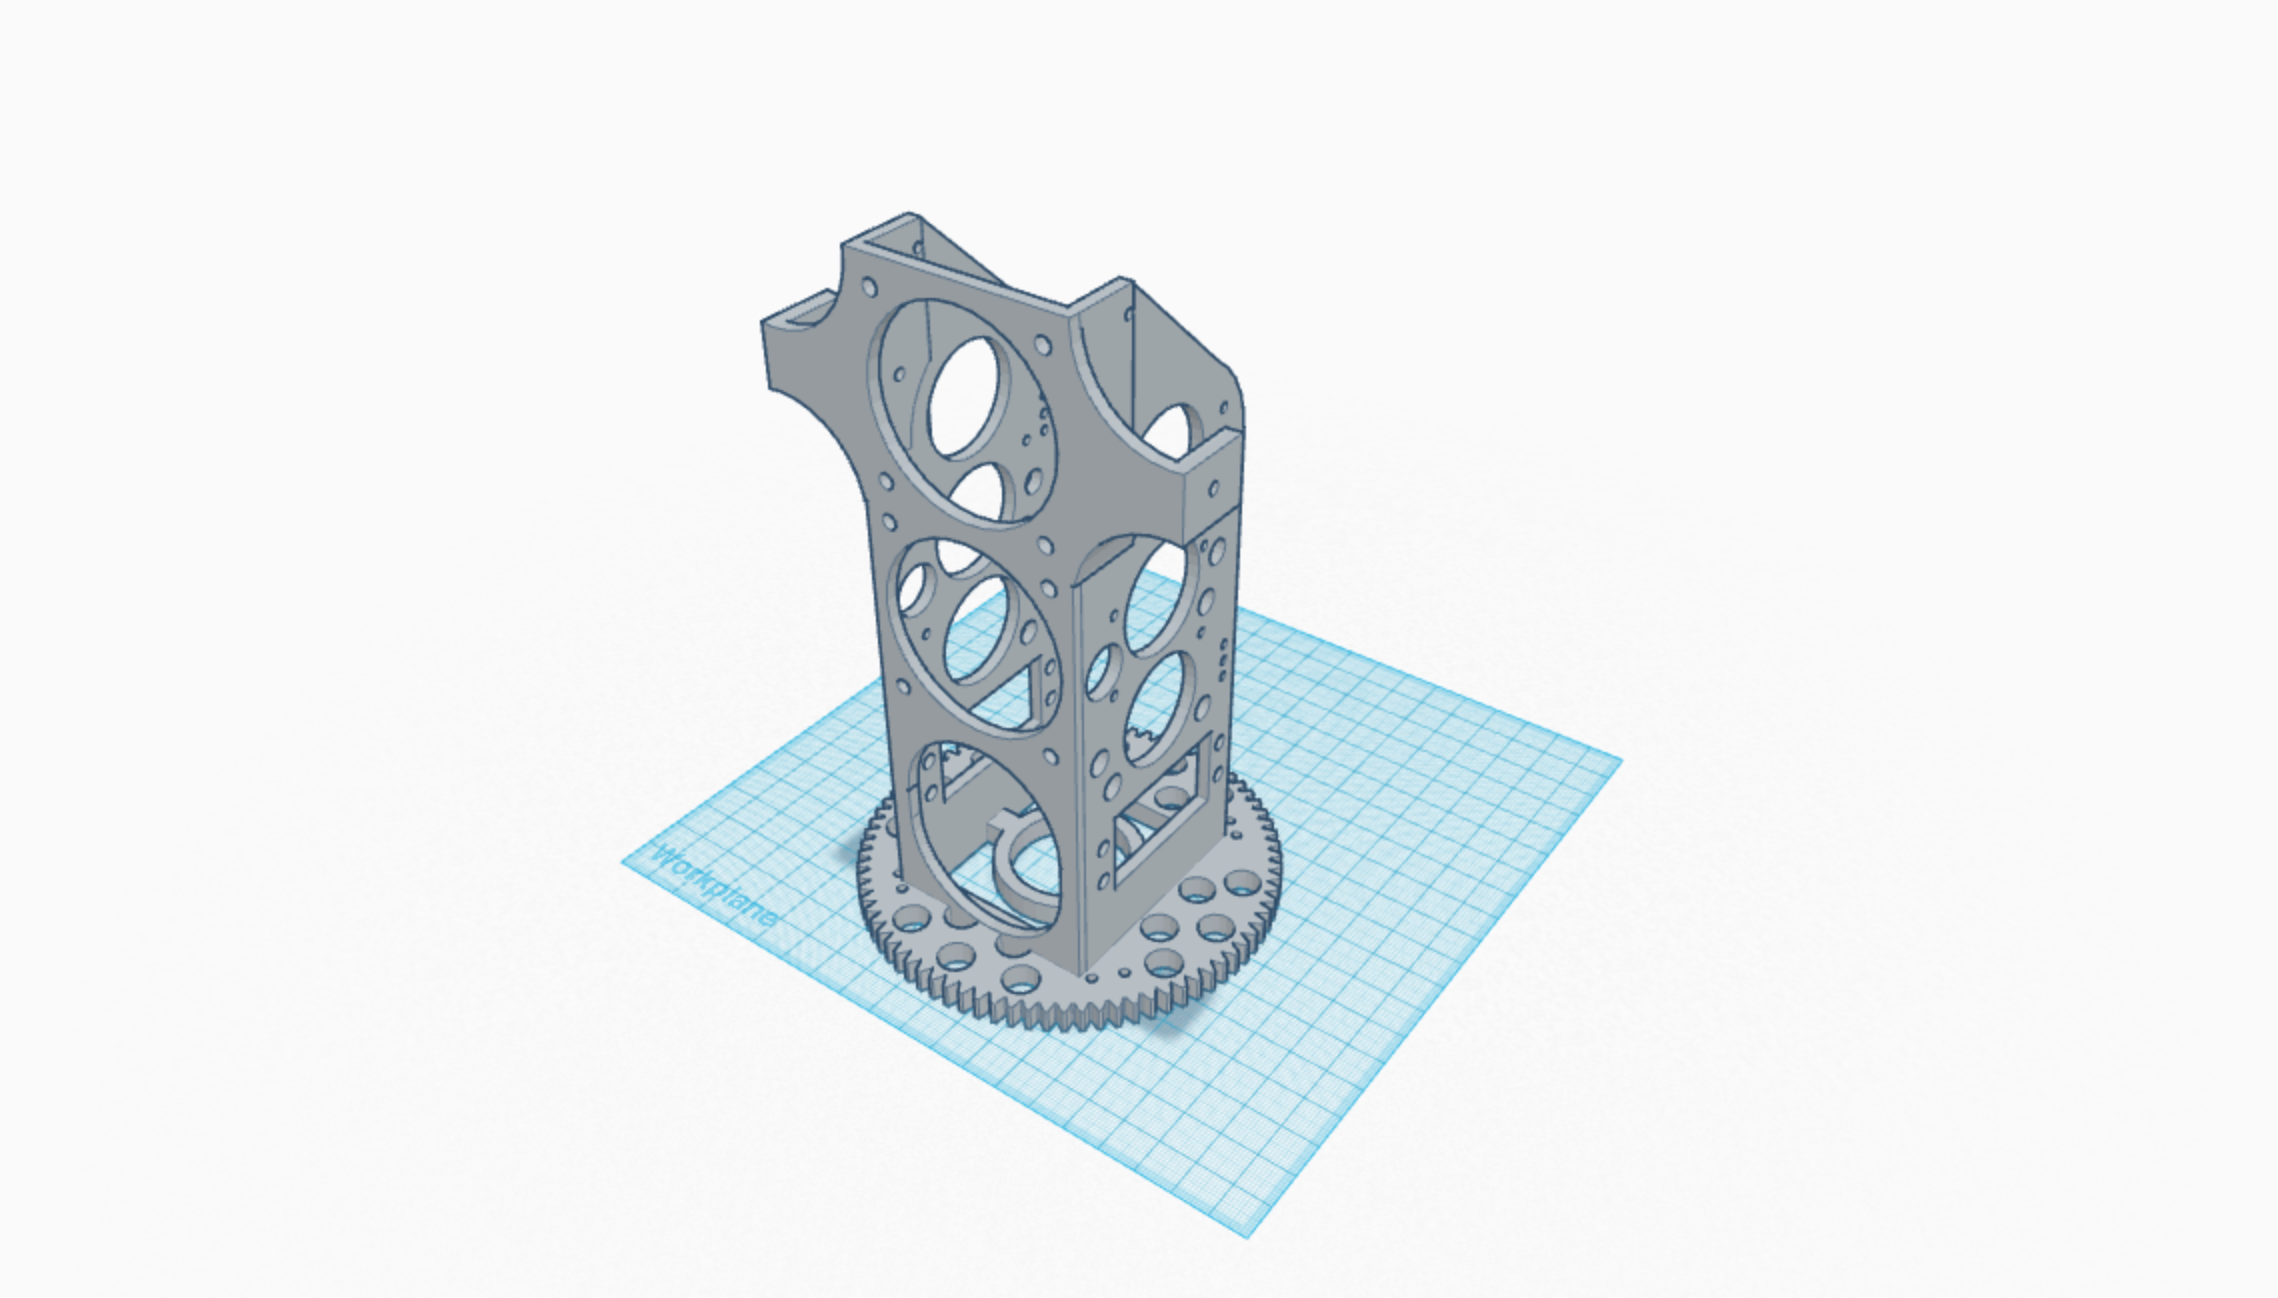 Designing 3D printed parts for AX03. This is version 7 of neck assembly.